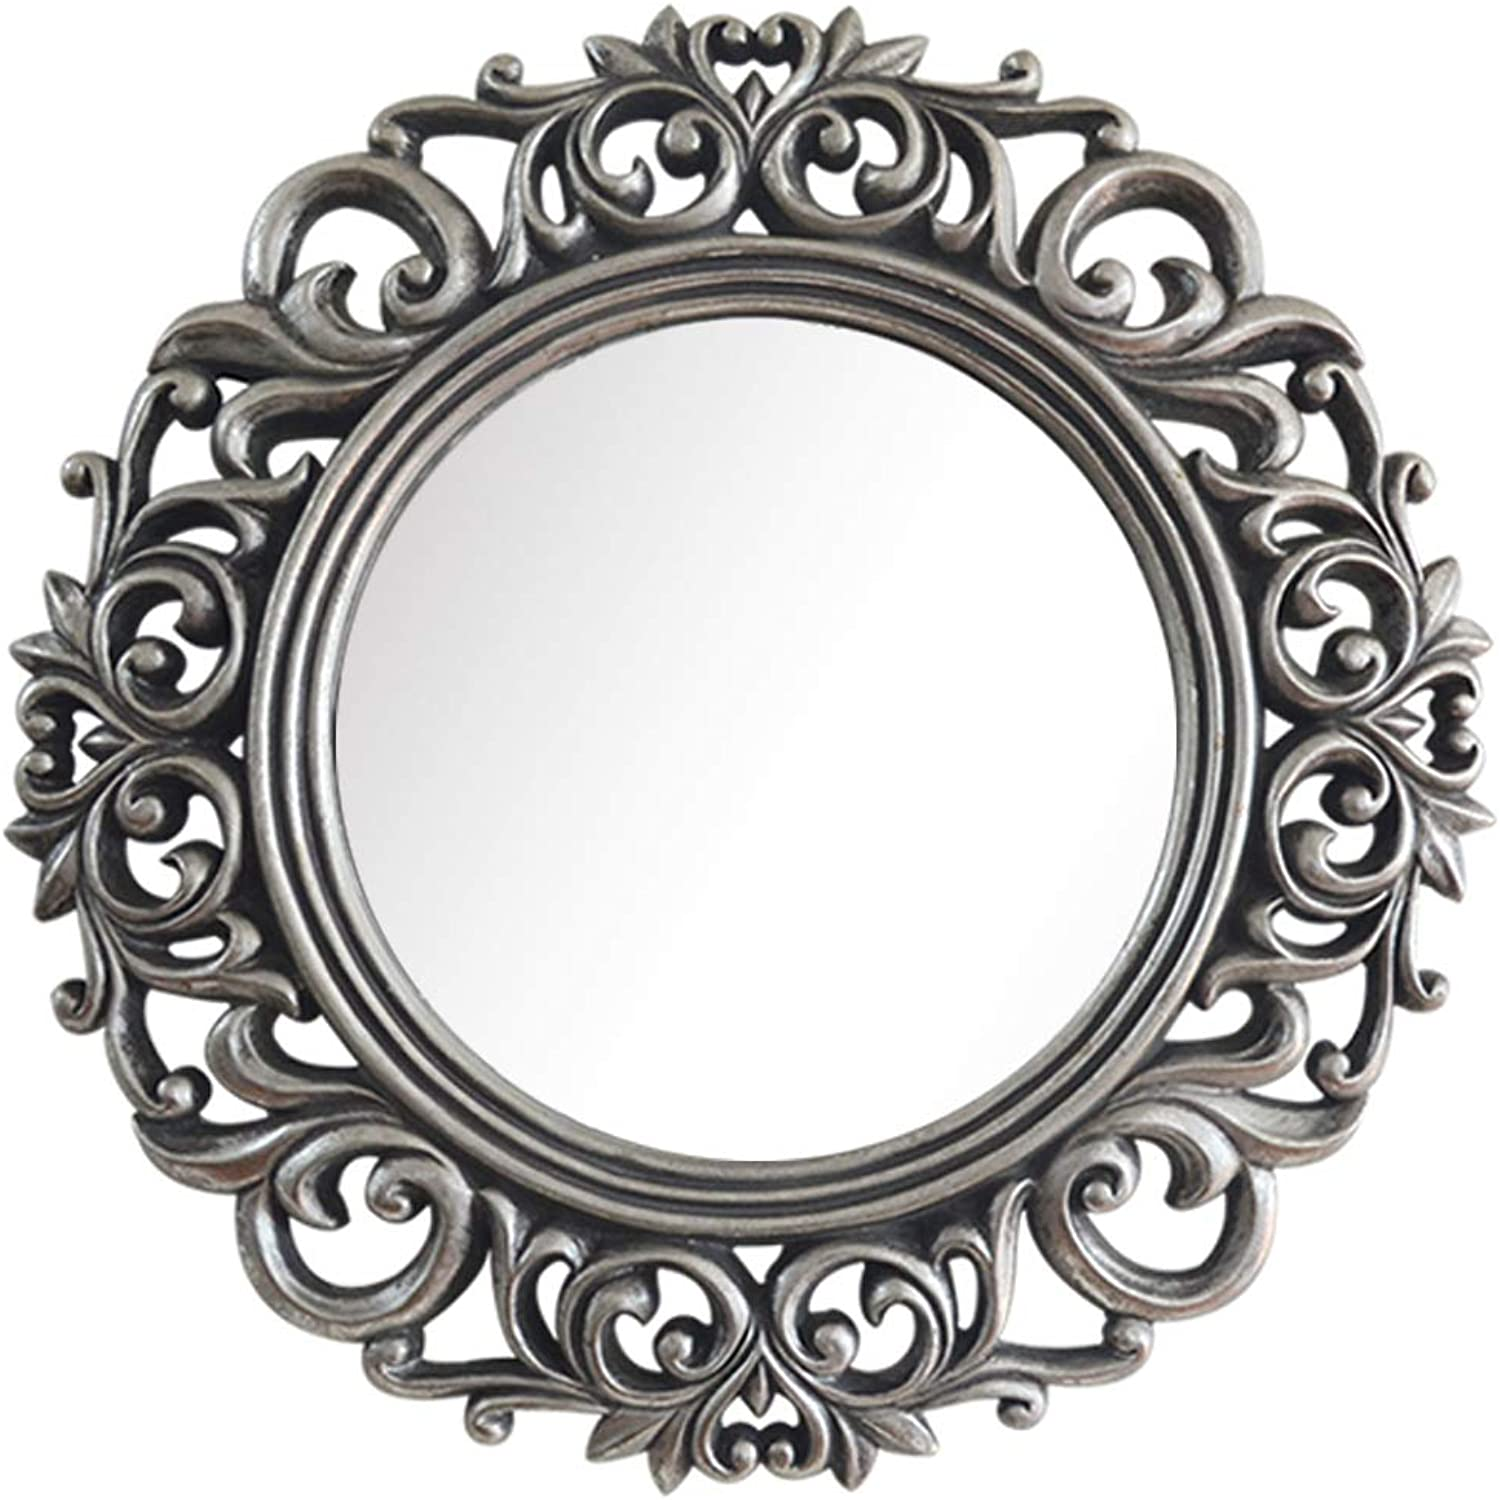 Decorative Mirror for Wall with European Style Hollow Vintage Frame 26CM Round Vanity Mirror Makeup Art Mirror for Bathroom Entry Dining Room Living Room and More